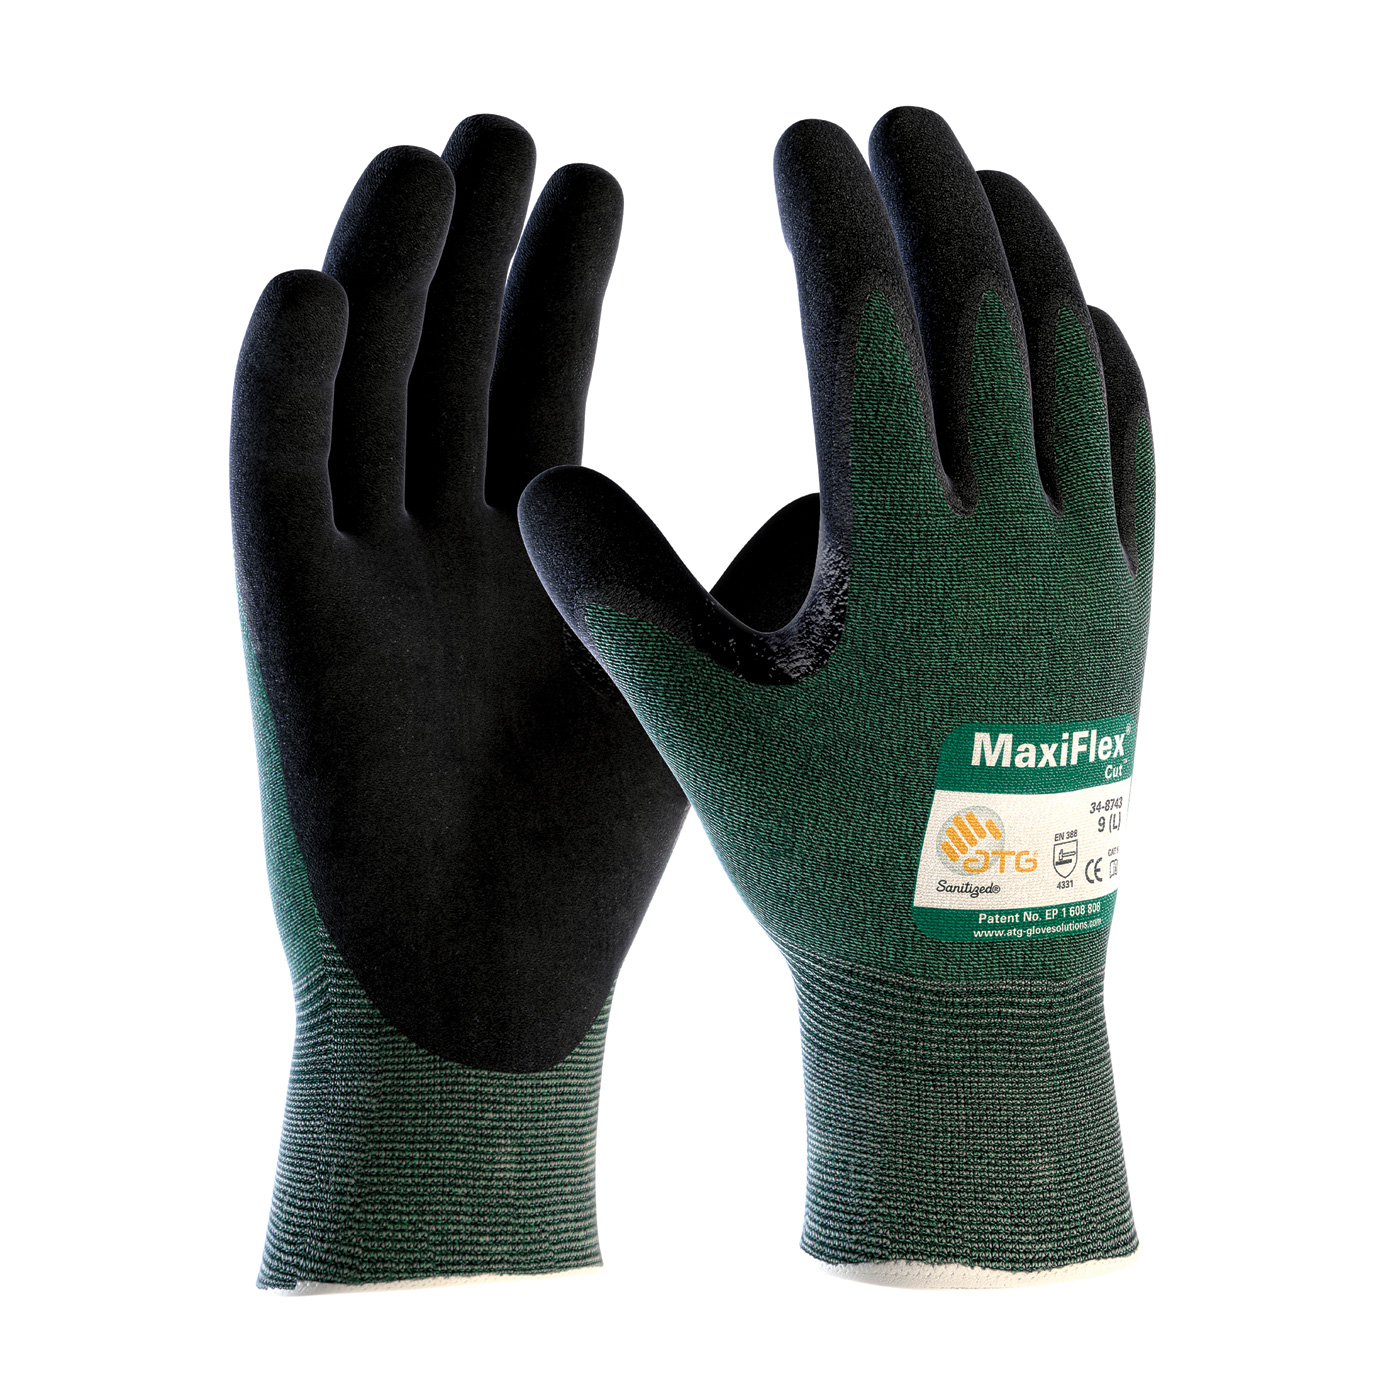 Hi Performance Nitrile By Atg Protective Industrial Products